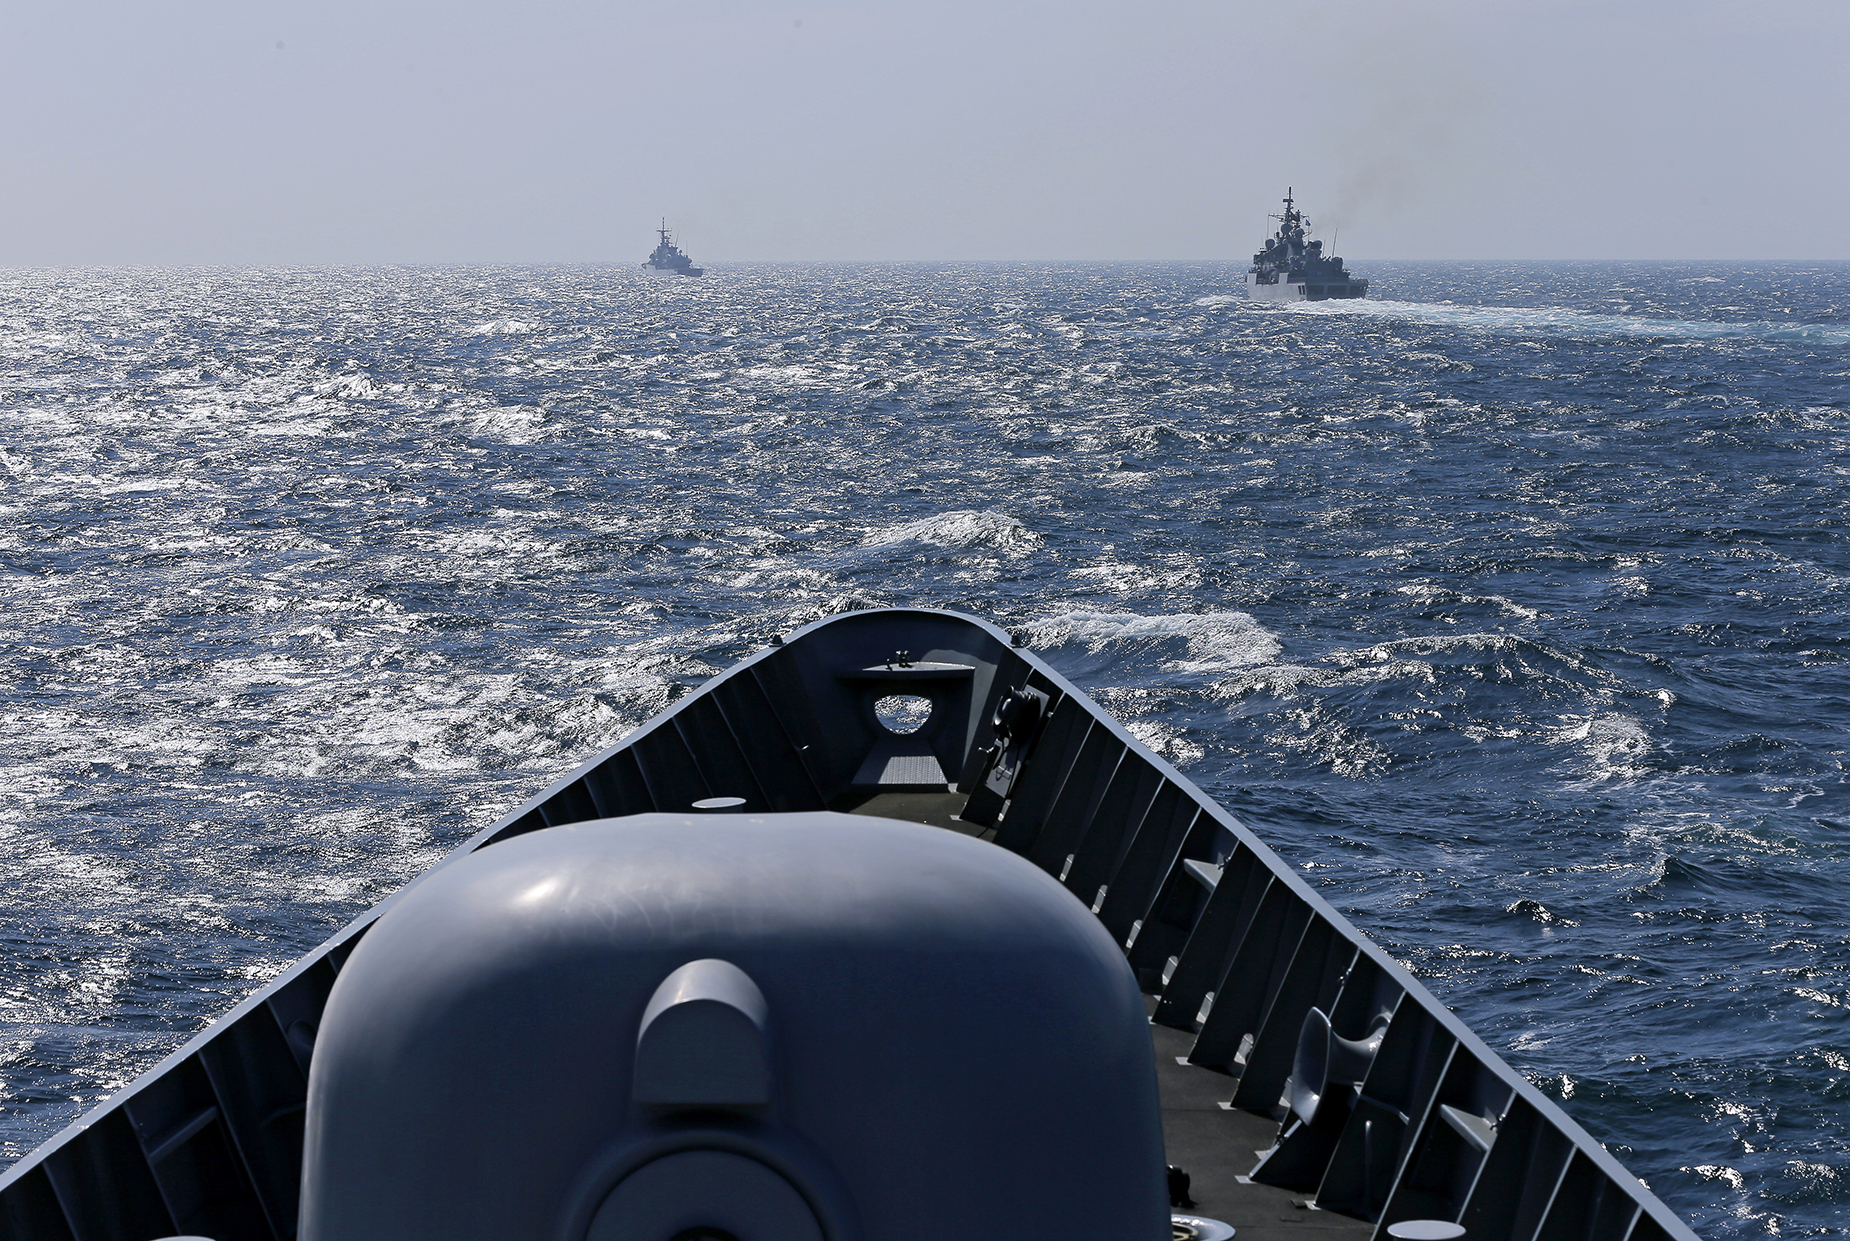 Routine patrol in the Black Sea to increase cooperation between NATO Allies